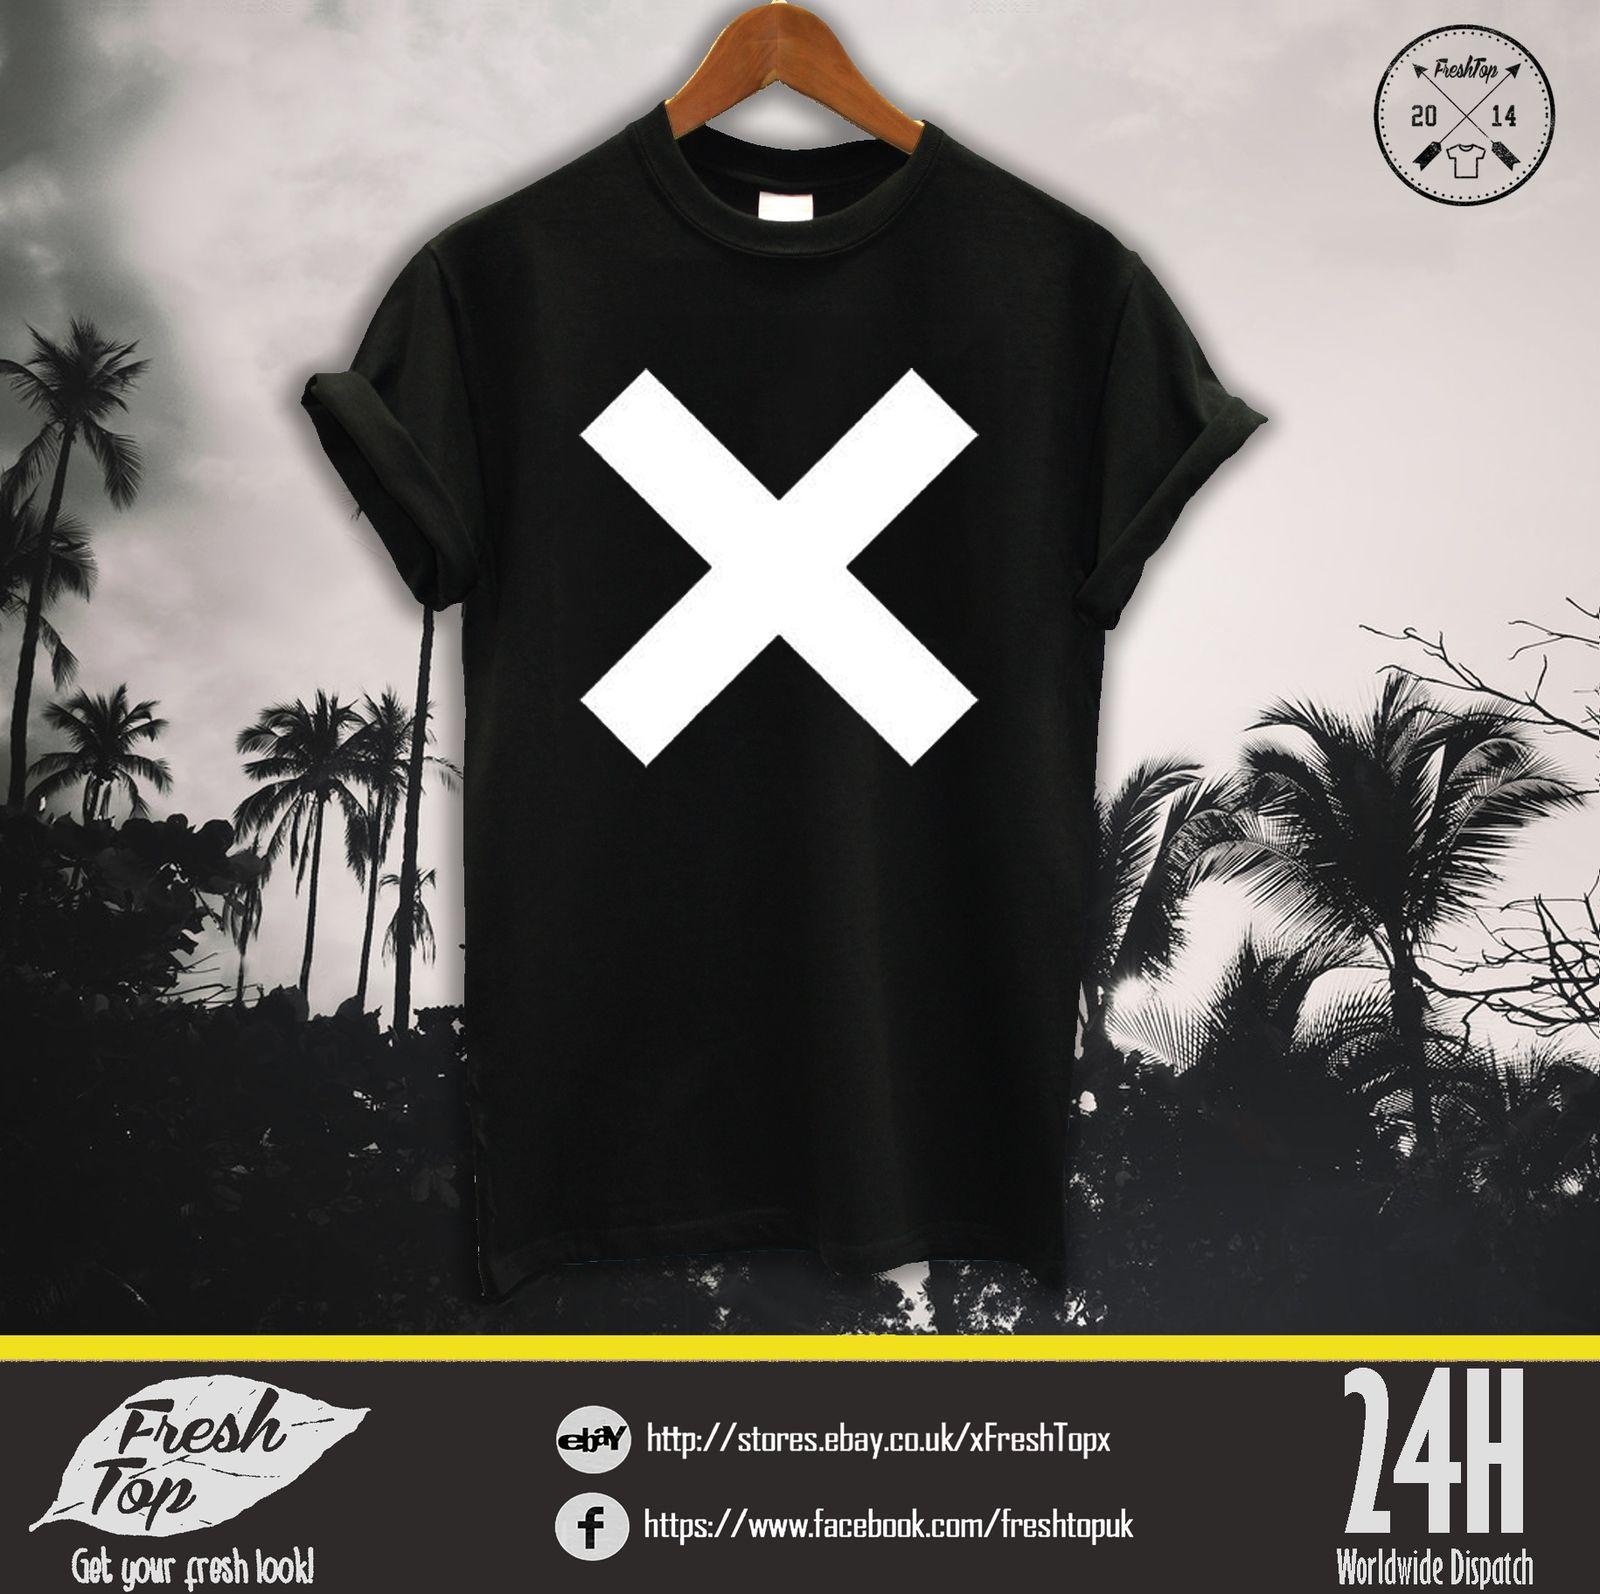 3b8e2417 The XX T Shirt Top Rum Band Coexist Indie Crooks Rock Amsterdam White Black  Tee Cool Casual Pride T Shirt Men Poker T Shirts Tshits From Cls6688521, ...